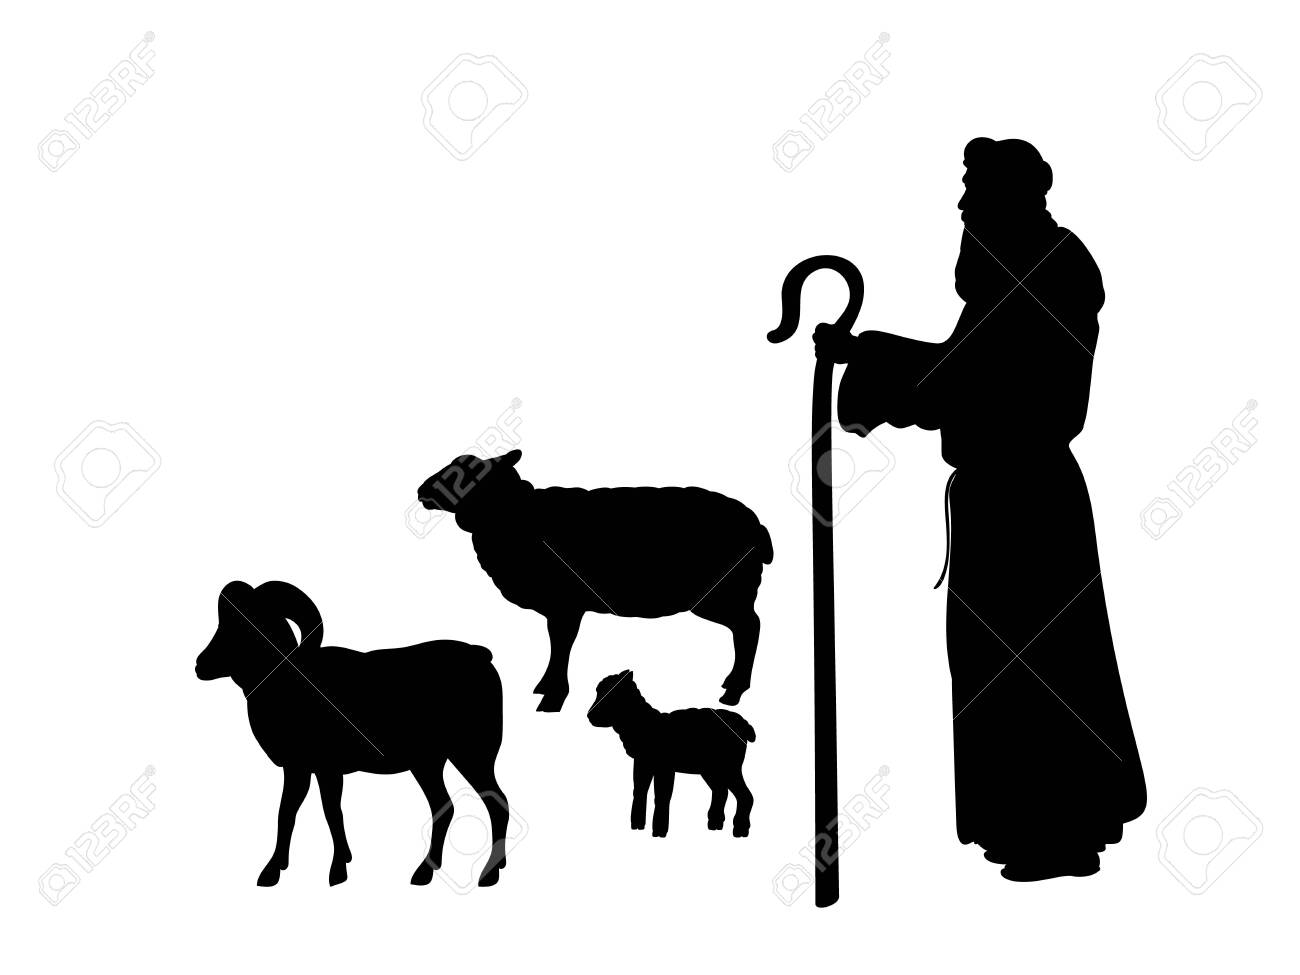 Holiday Silhouettes Christmas Nativity Shepherd Grazes Flock Sheep Royalty Free Cliparts Vectors And Stock Illustration Image 131880048